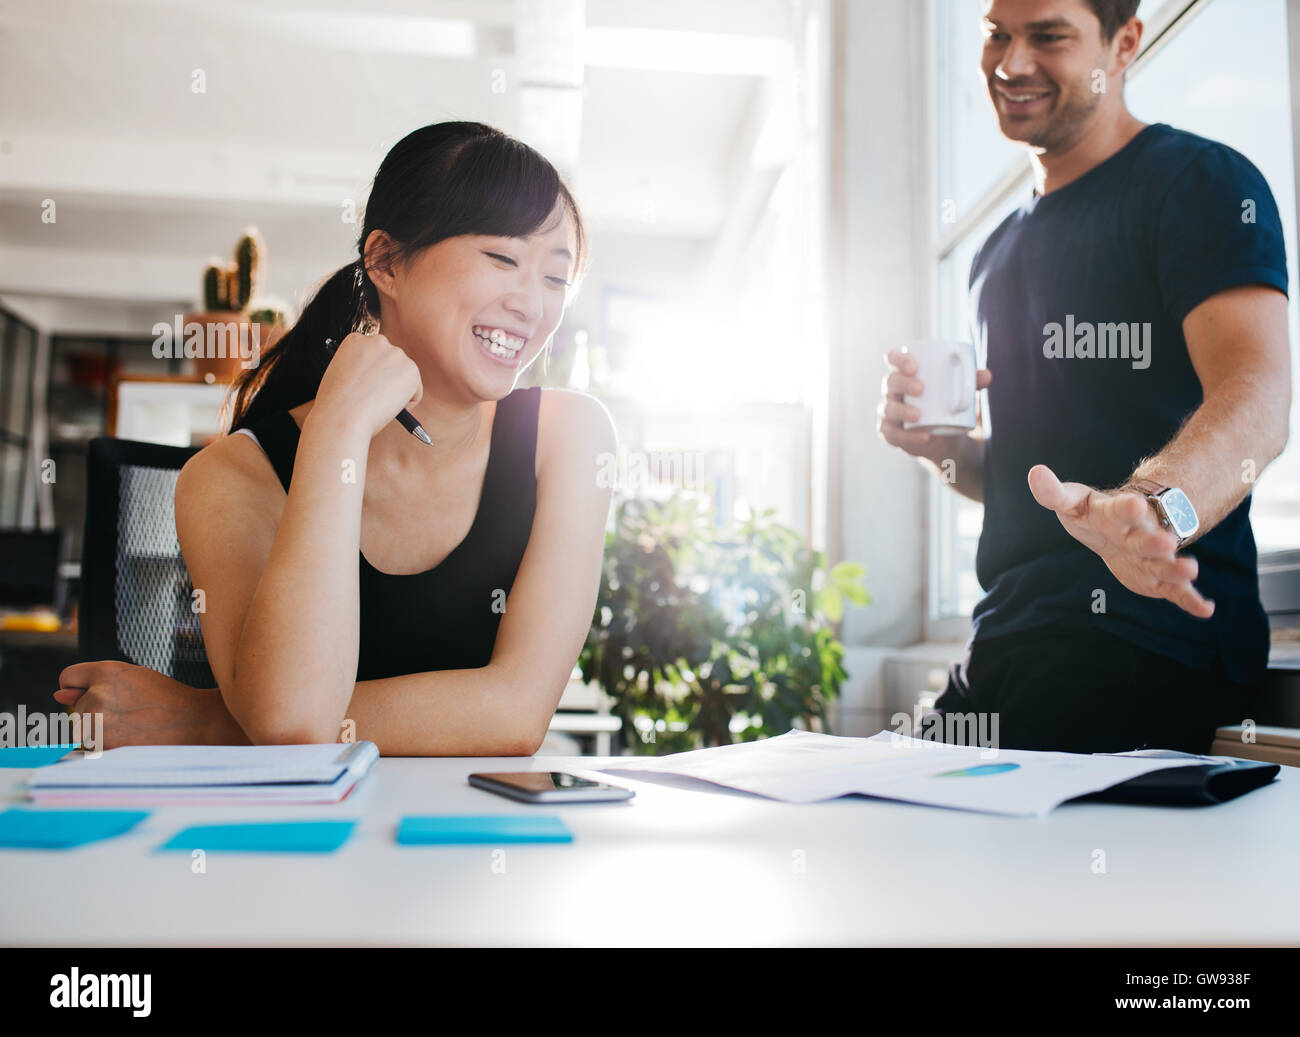 Shot of two young business partners discussing new ideas and smiling. Young people working together in office. - Stock Image